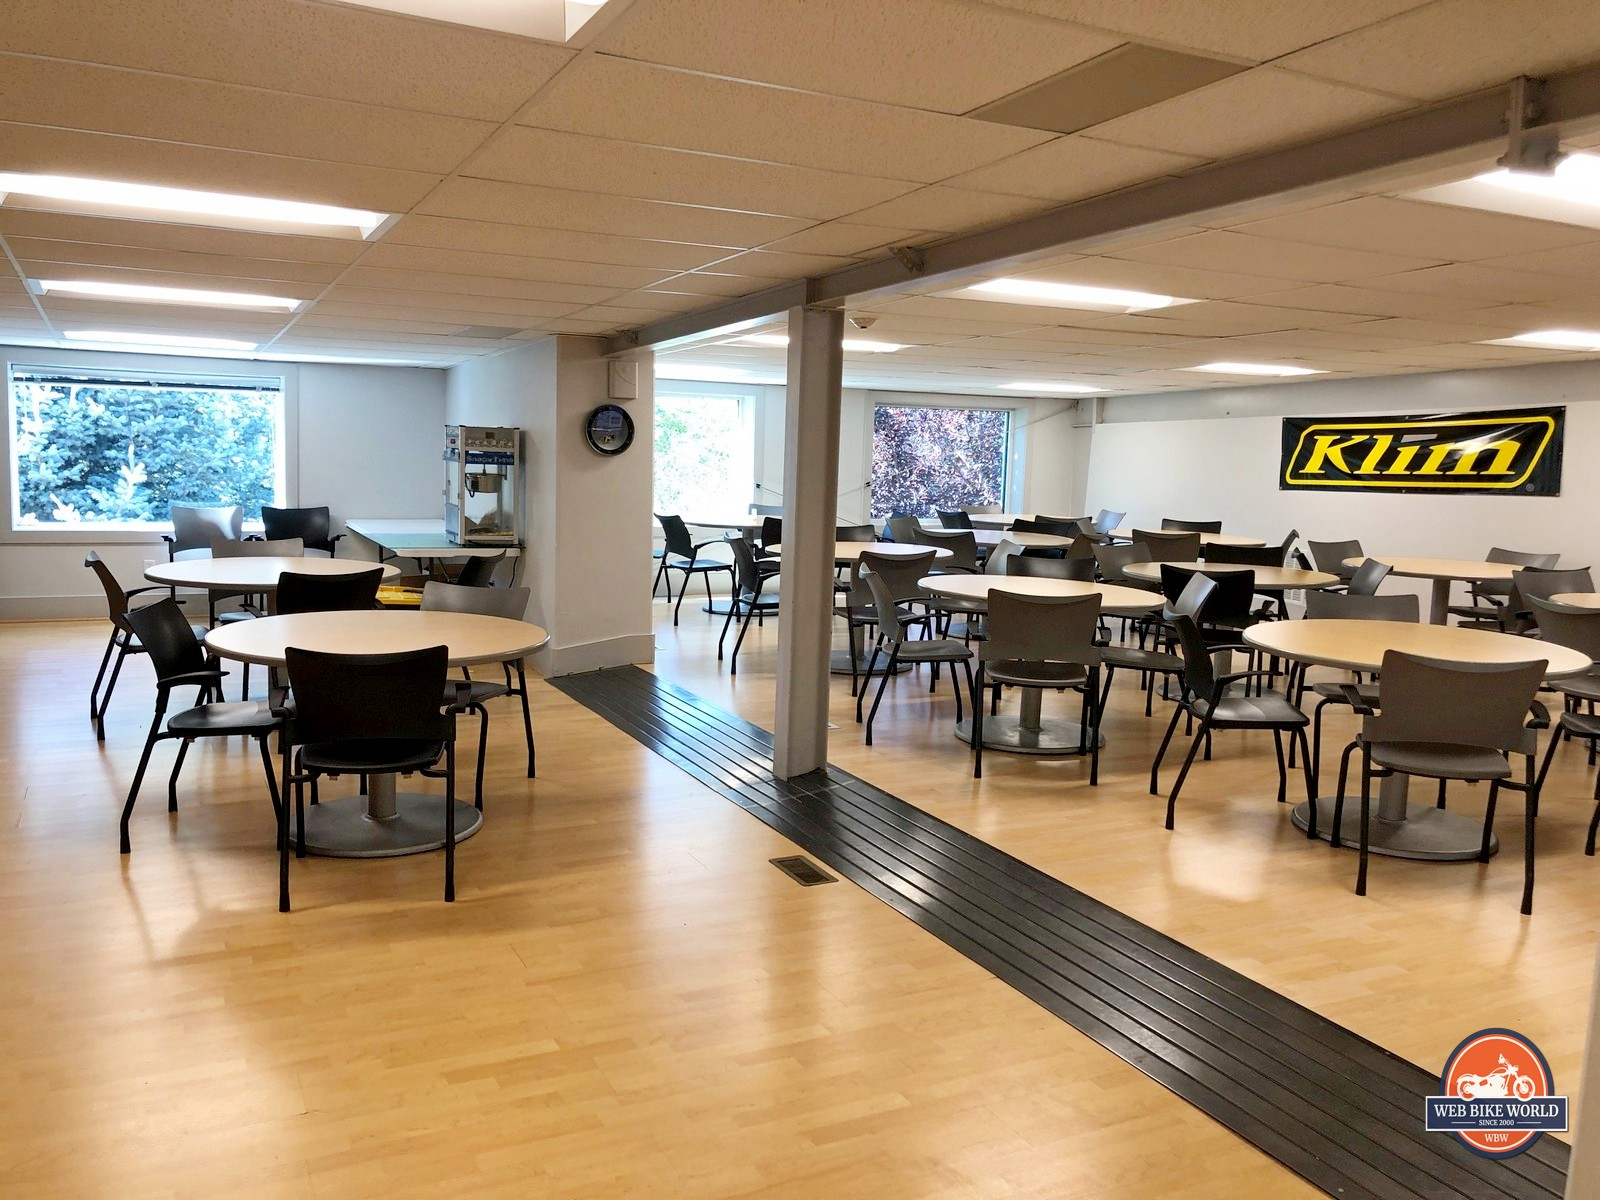 The lunchroom at Klim HQ.